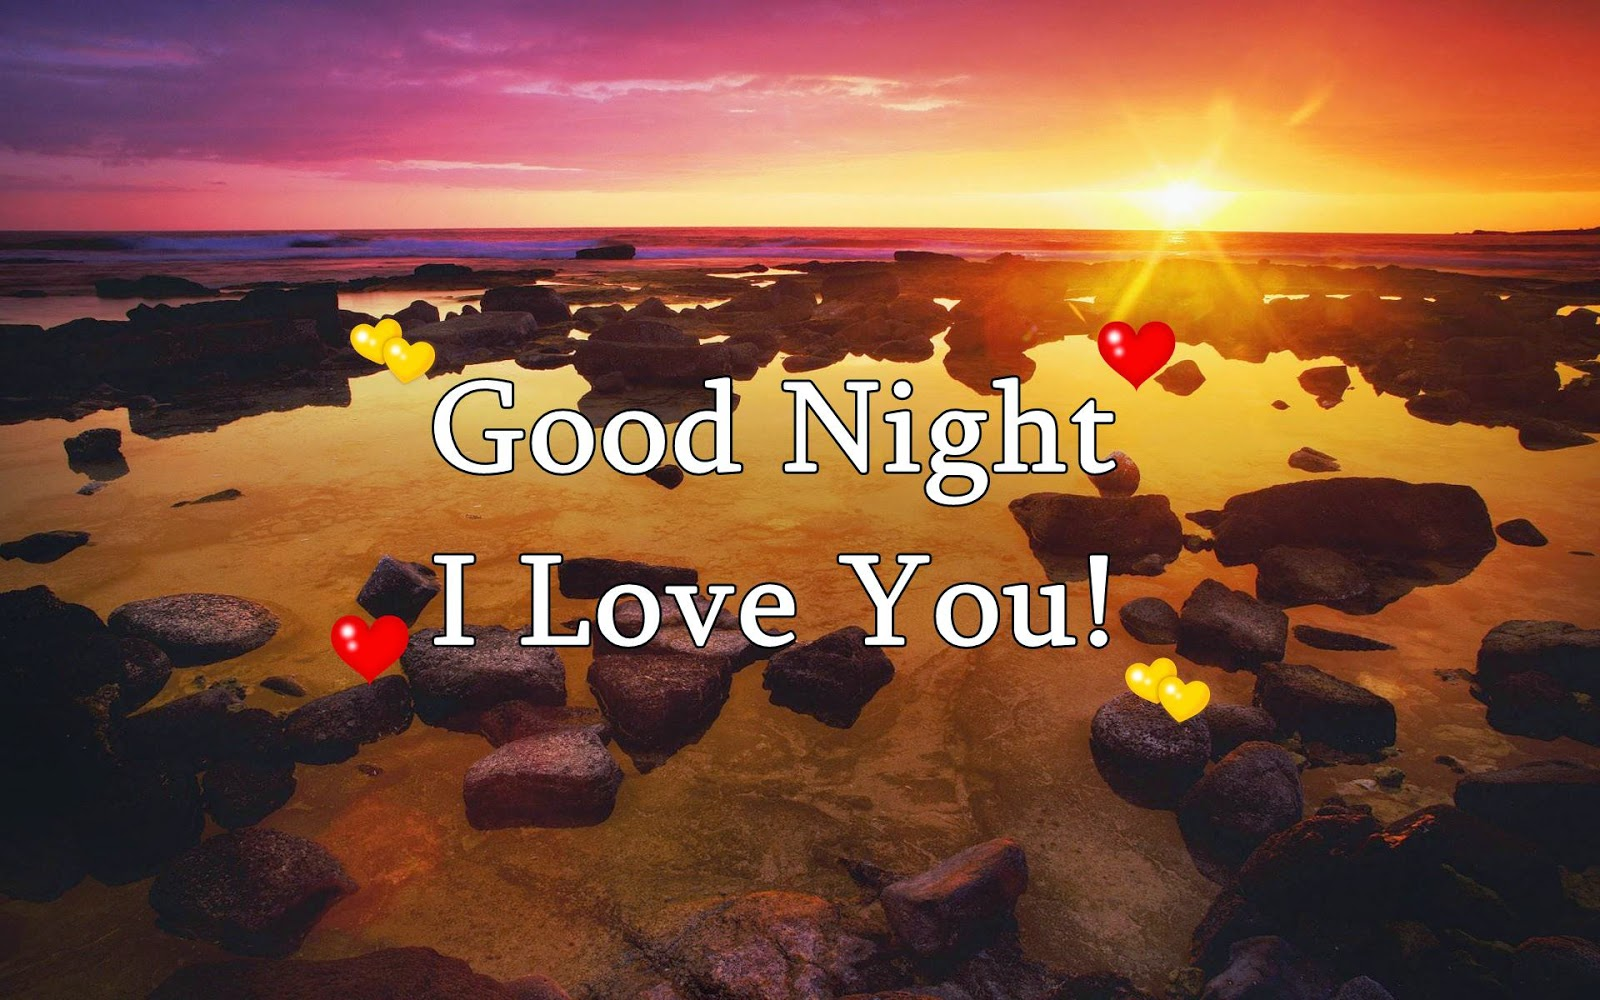 Good Night Wallpaper To Love : Free HD Wallpapers of Download free Hd wallpapers download Hd wallpapers of Events: Download ...